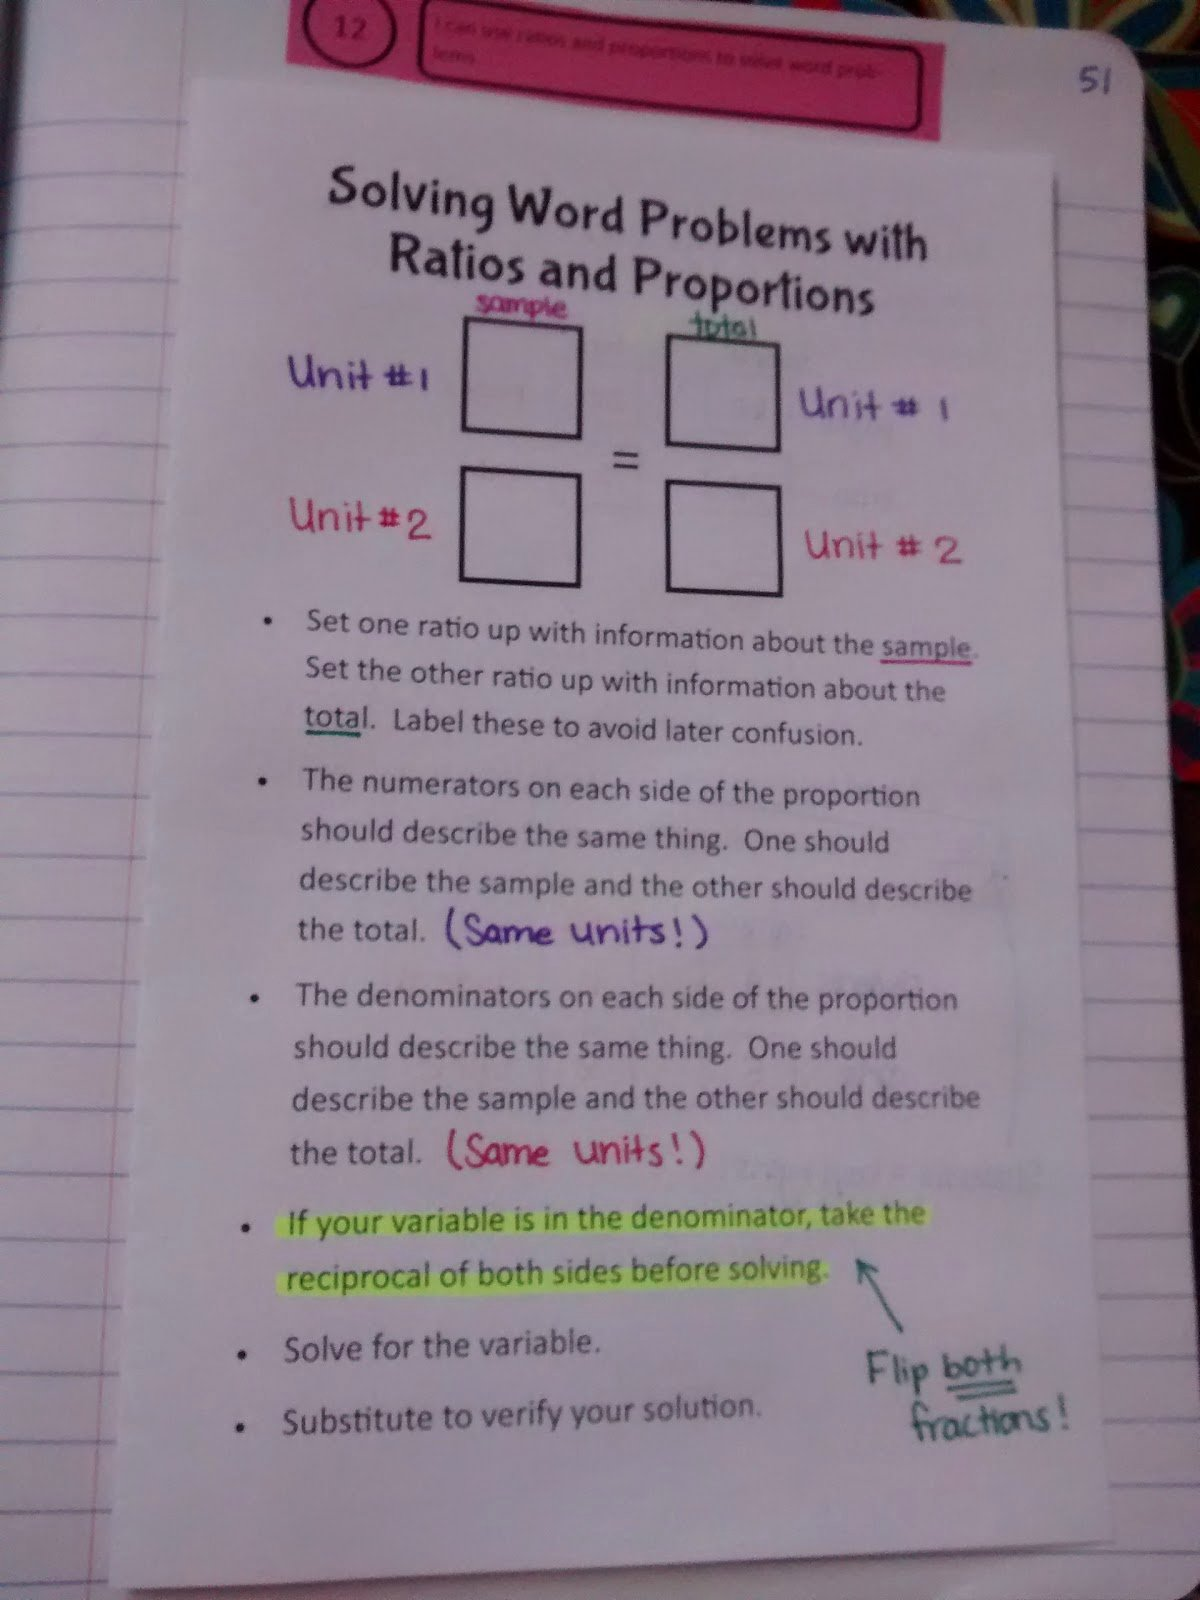 Solving Proportions Word Problems Worksheet Luxury Math = Love solving Word Problems with Ratios and Proportions